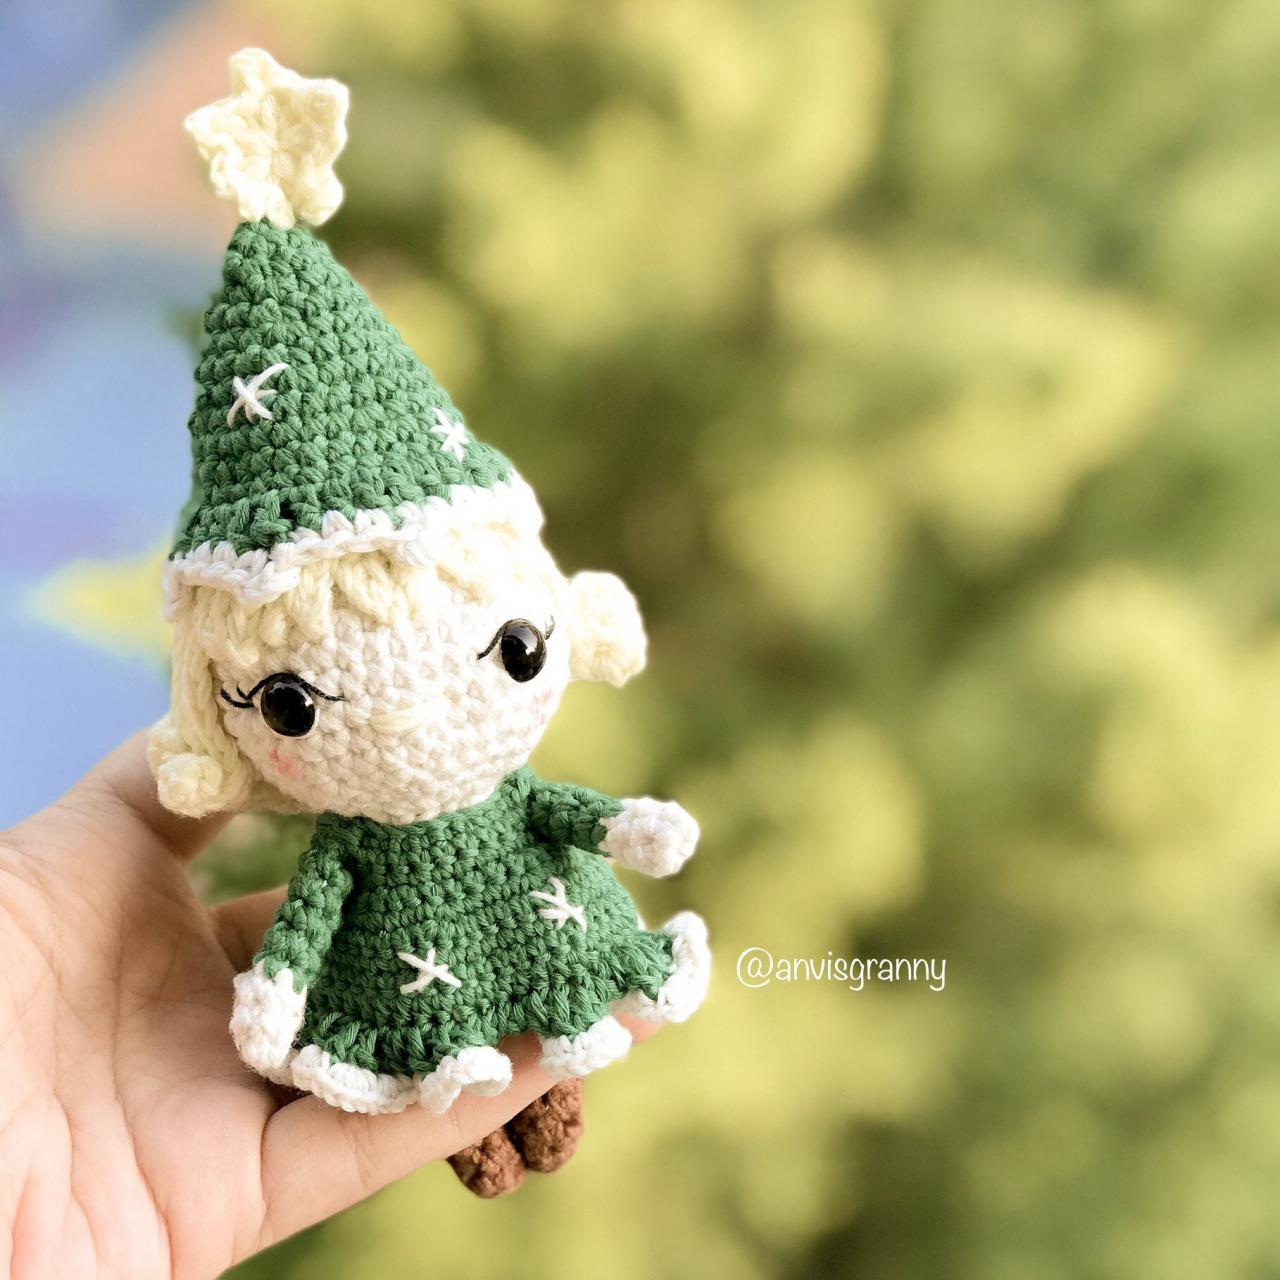 Amigurumi Pattern - Handmade DIY ornament - Cute gift for girl- Instant download crochet tutorial PDF (English)